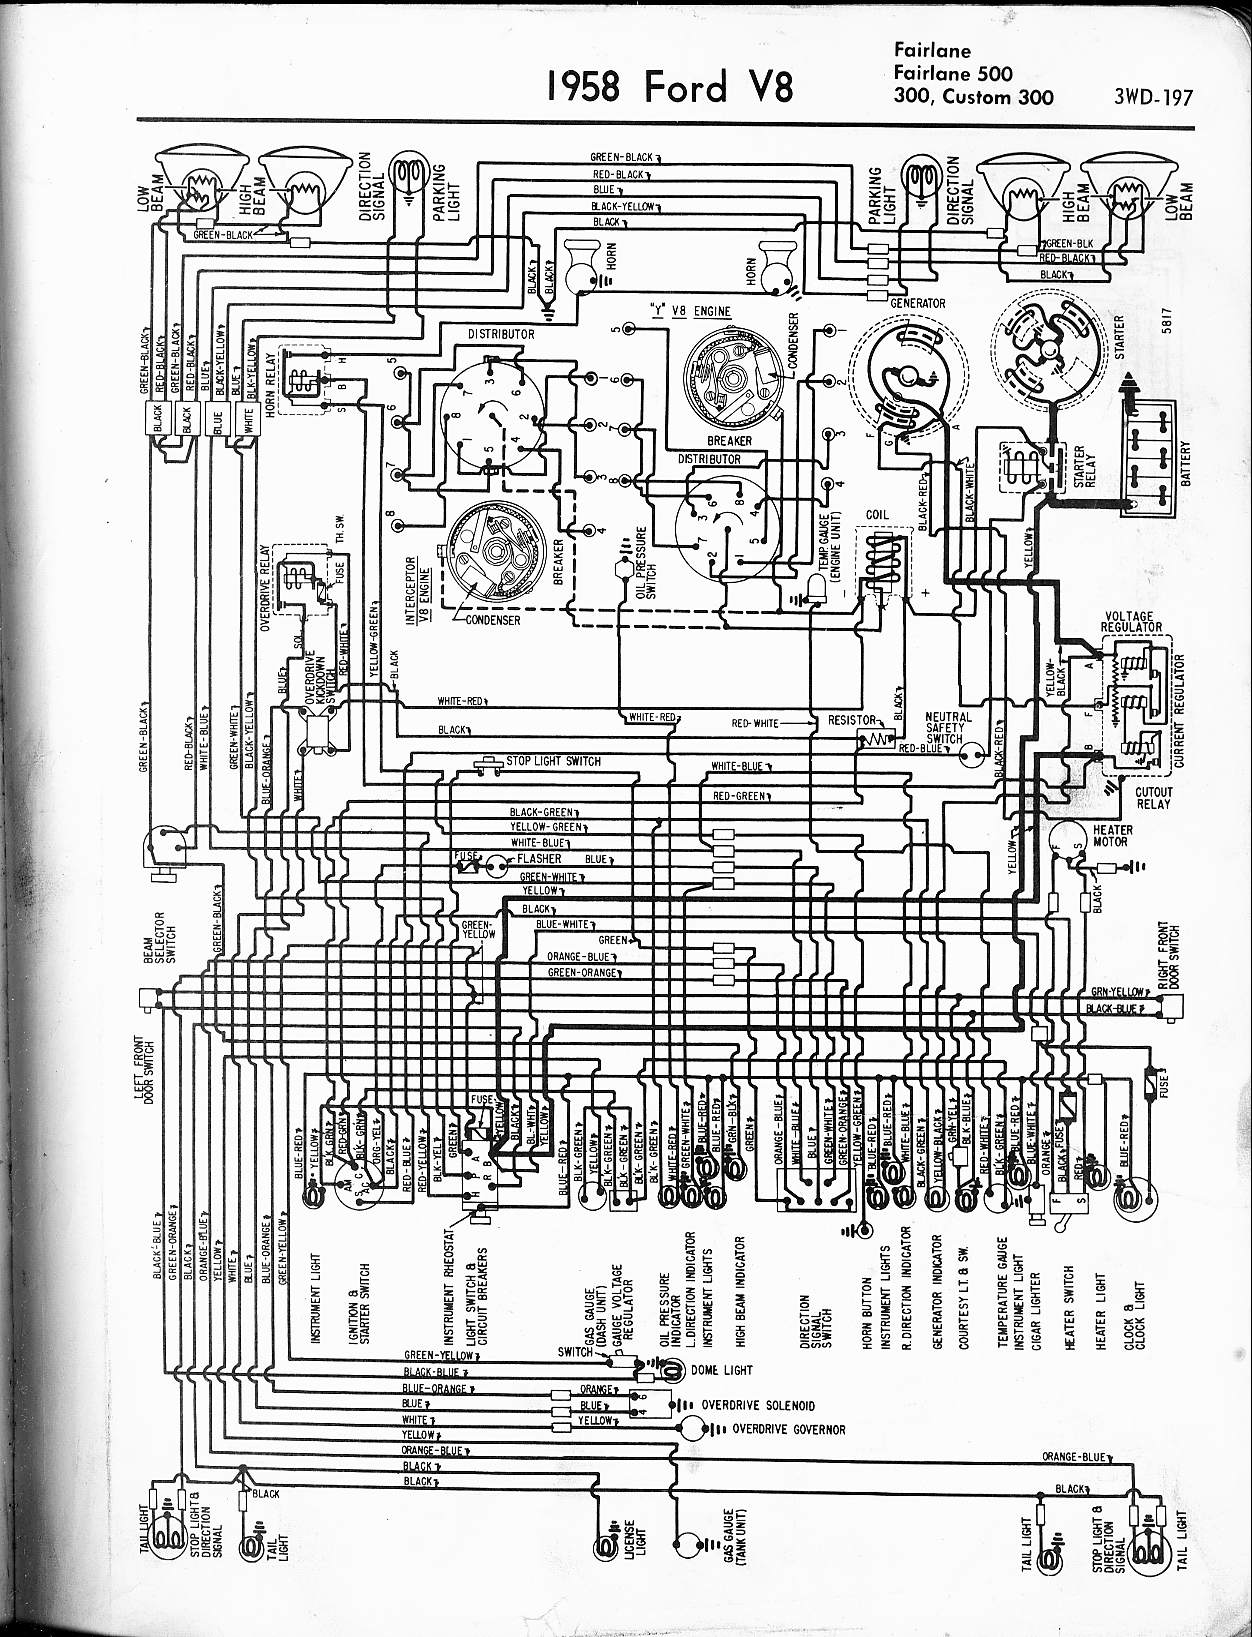 1968 Ford Fairlane Wiring Diagram - Wiring Diagram Features